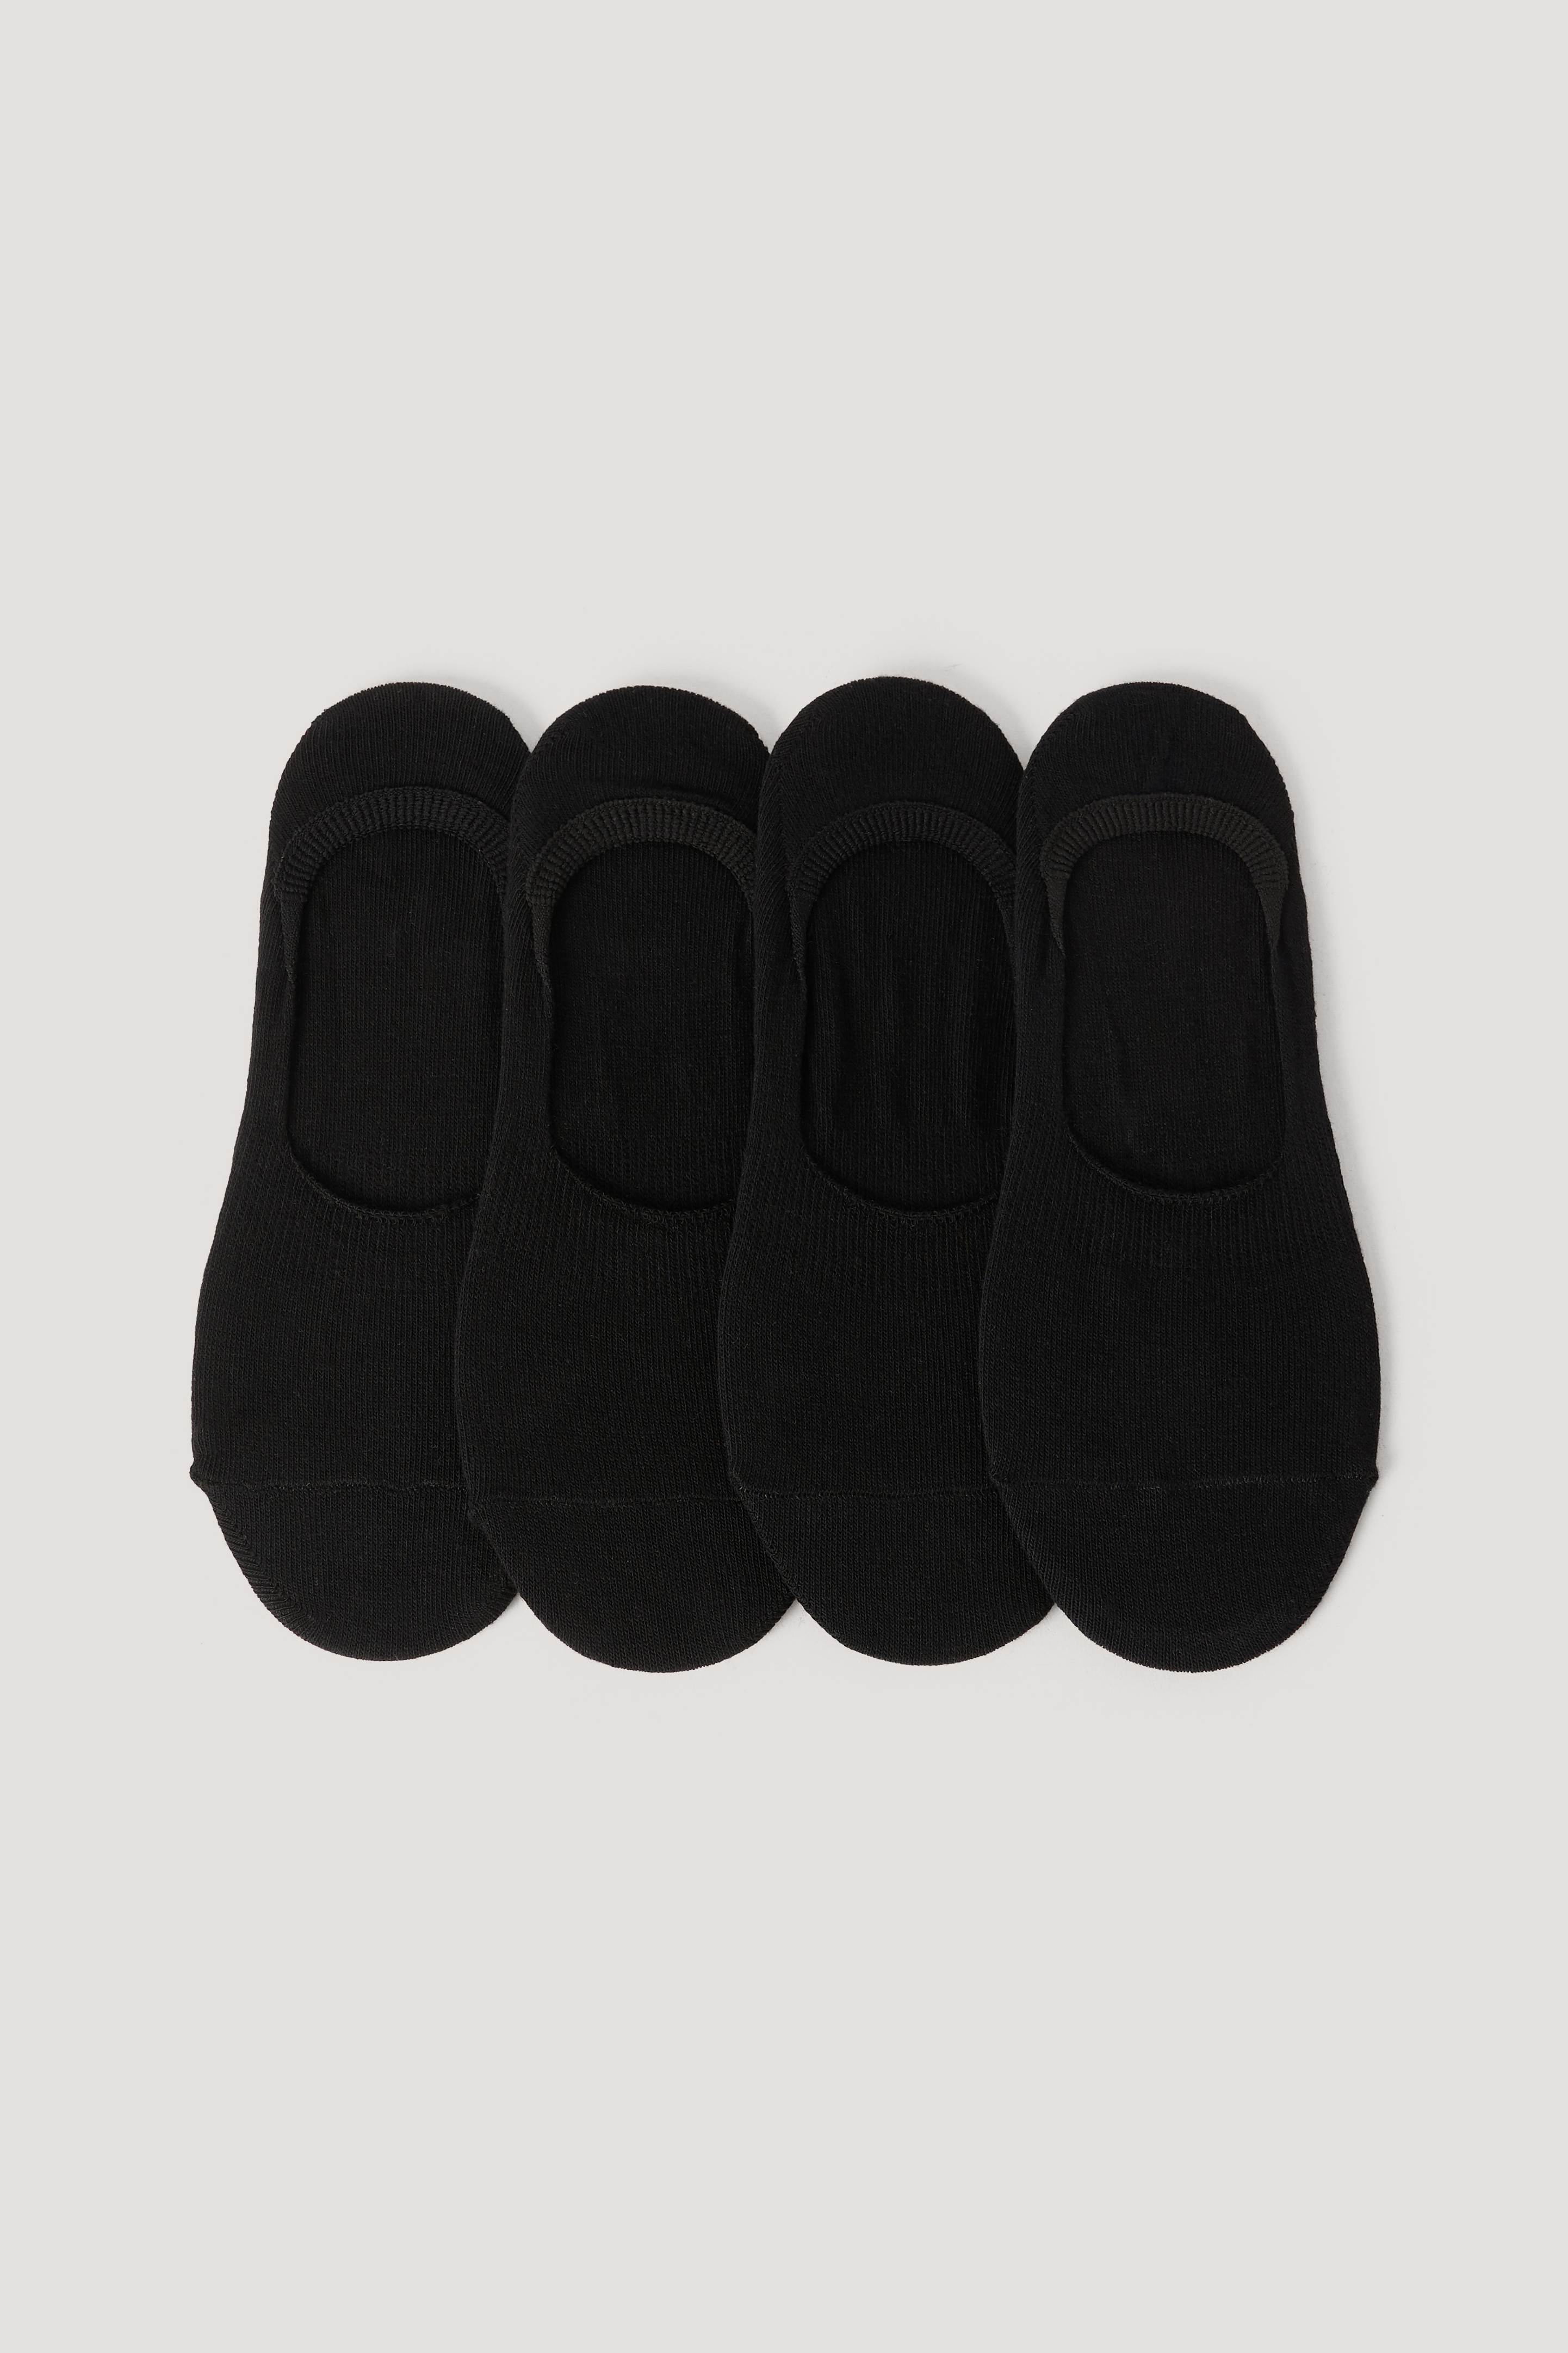 Black Organic Footies 4 pack